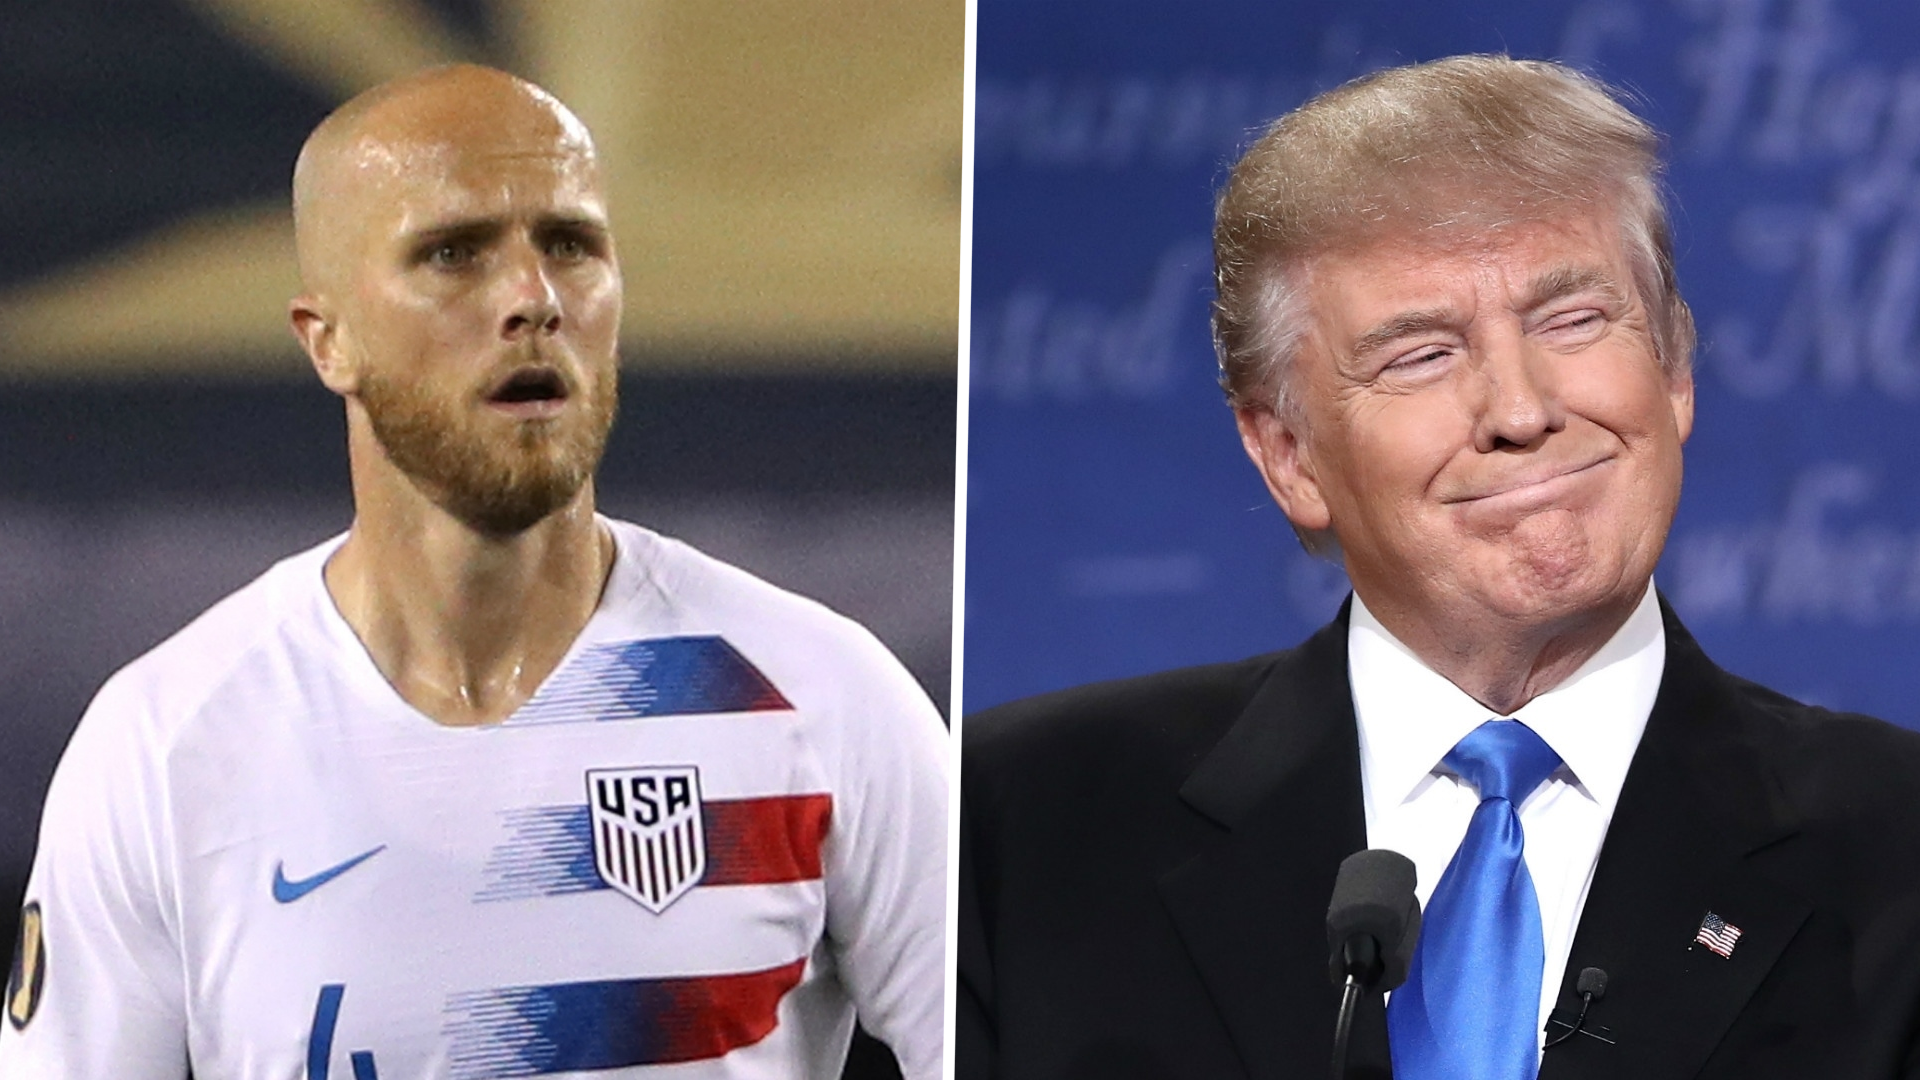 Michael Bradley on 'empty' Donald Trump: 'There isn't a moral bone in his body'